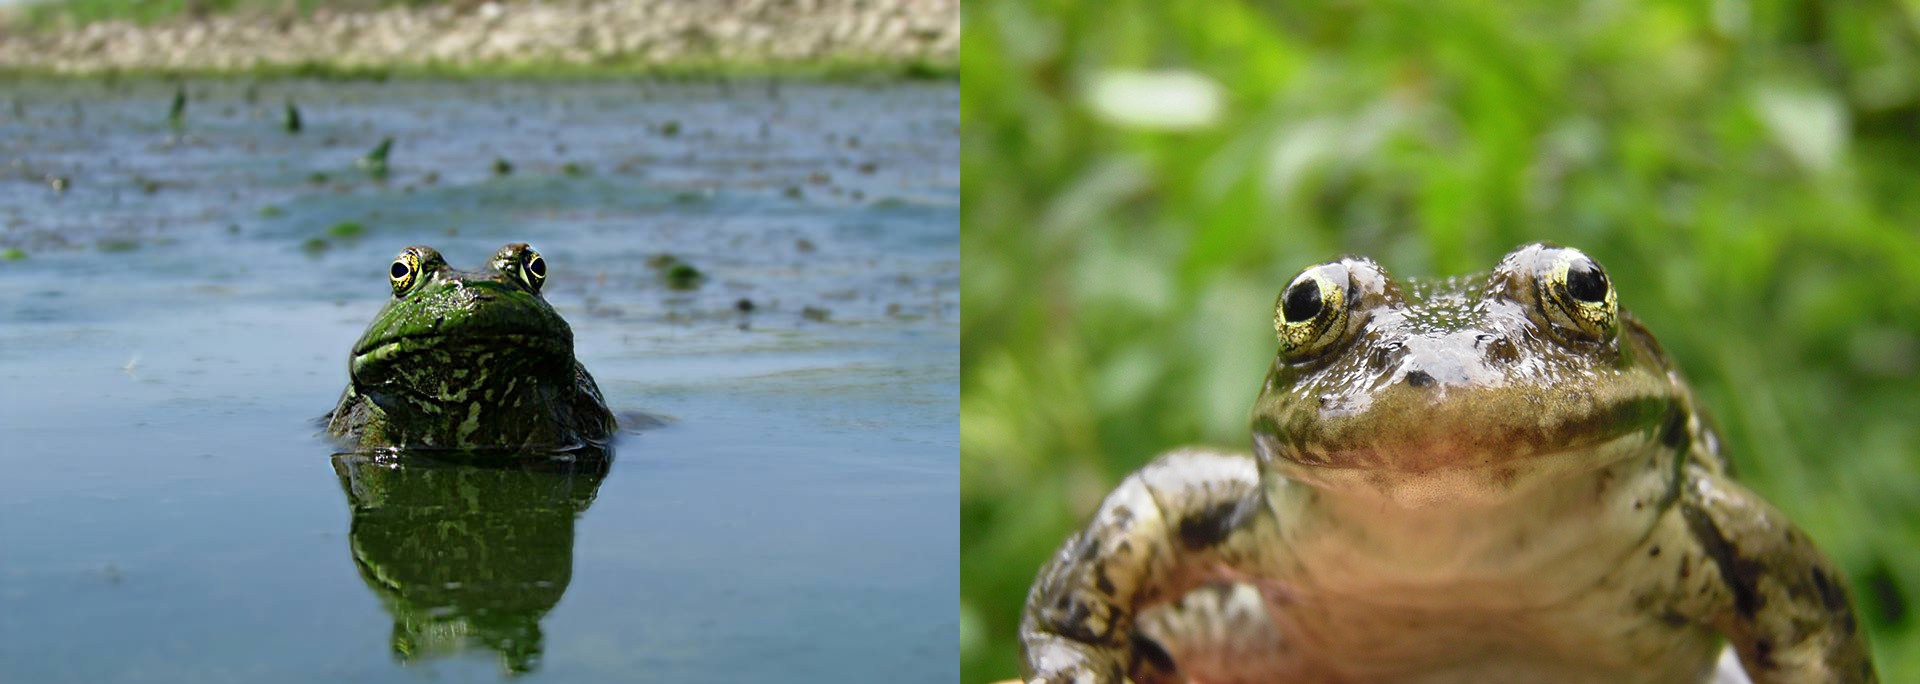 Side-by-side comparison of two dark green frogs with bulgy gold eyes that look similar in appearance.